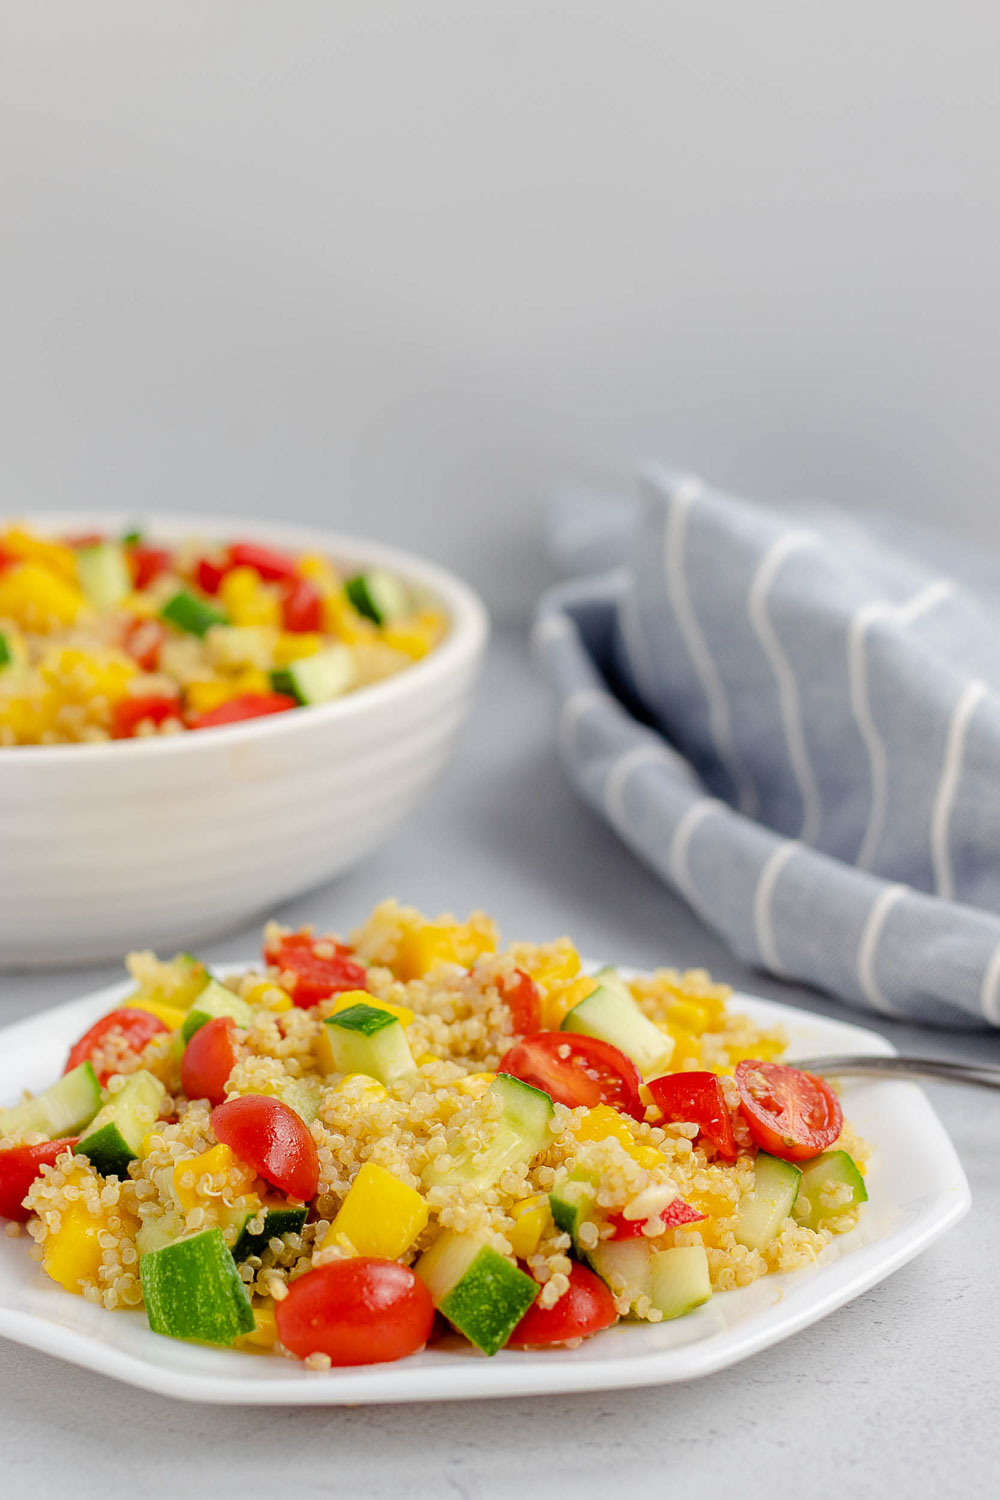 This 20-minute healthy mango quinoa salad is vegan, gluten-free, and perfect for entertaining. It will be your favorite easy lunch or summer salad that can be made ahead of time.